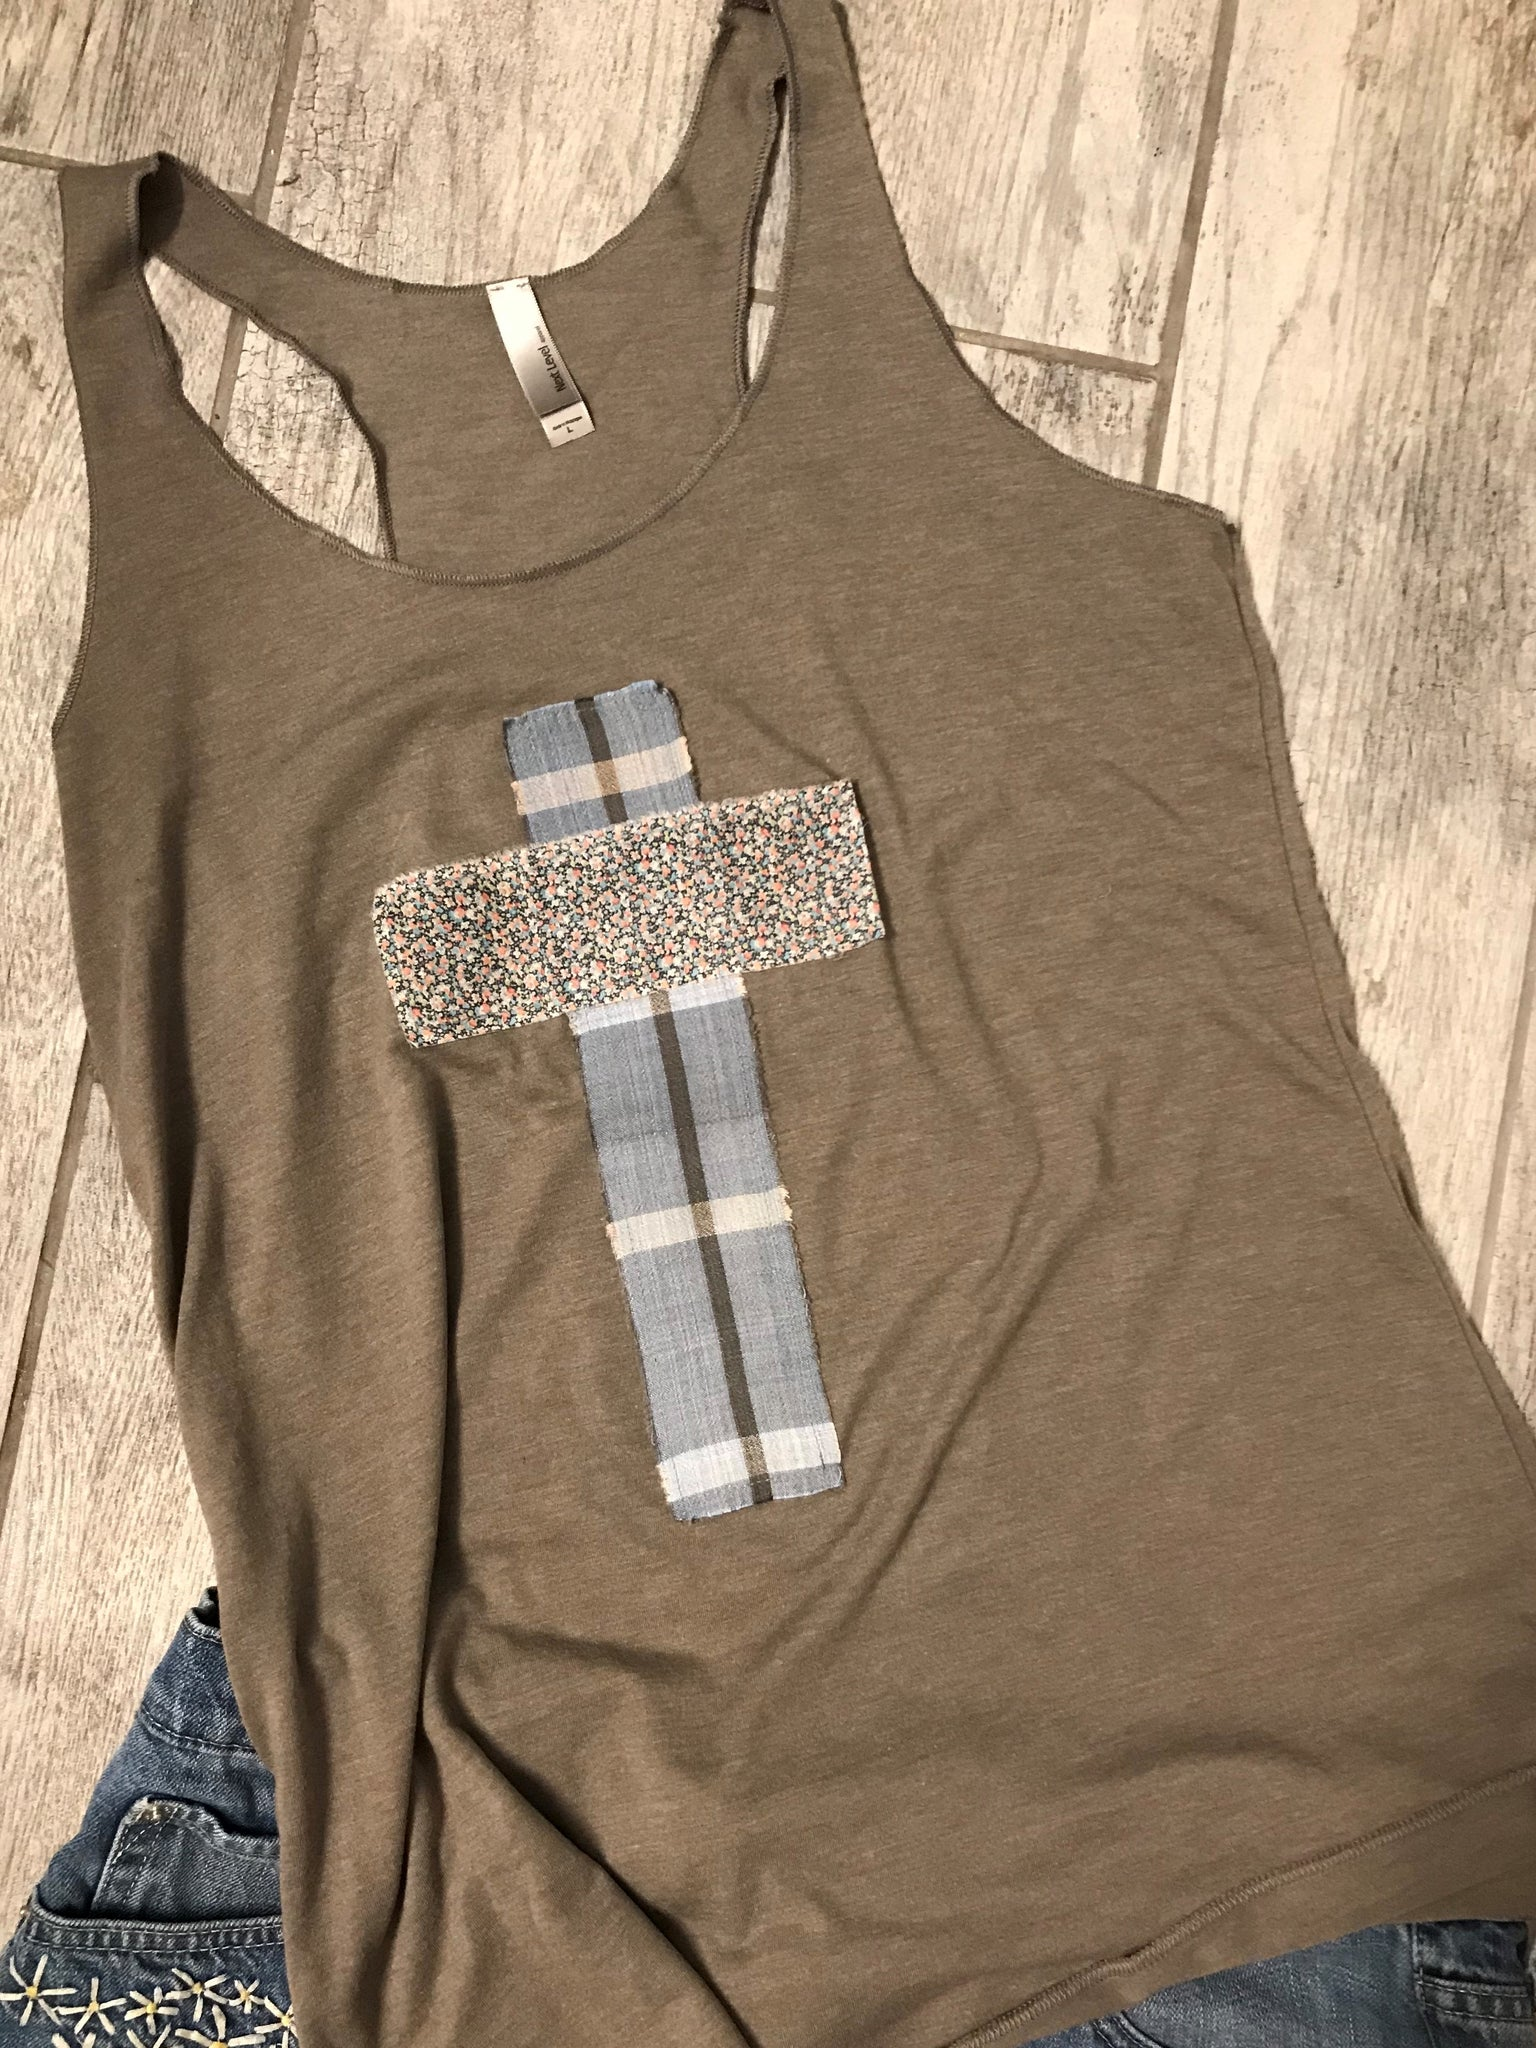 Rugged Cross Racer Back Tank Tee, Size Large